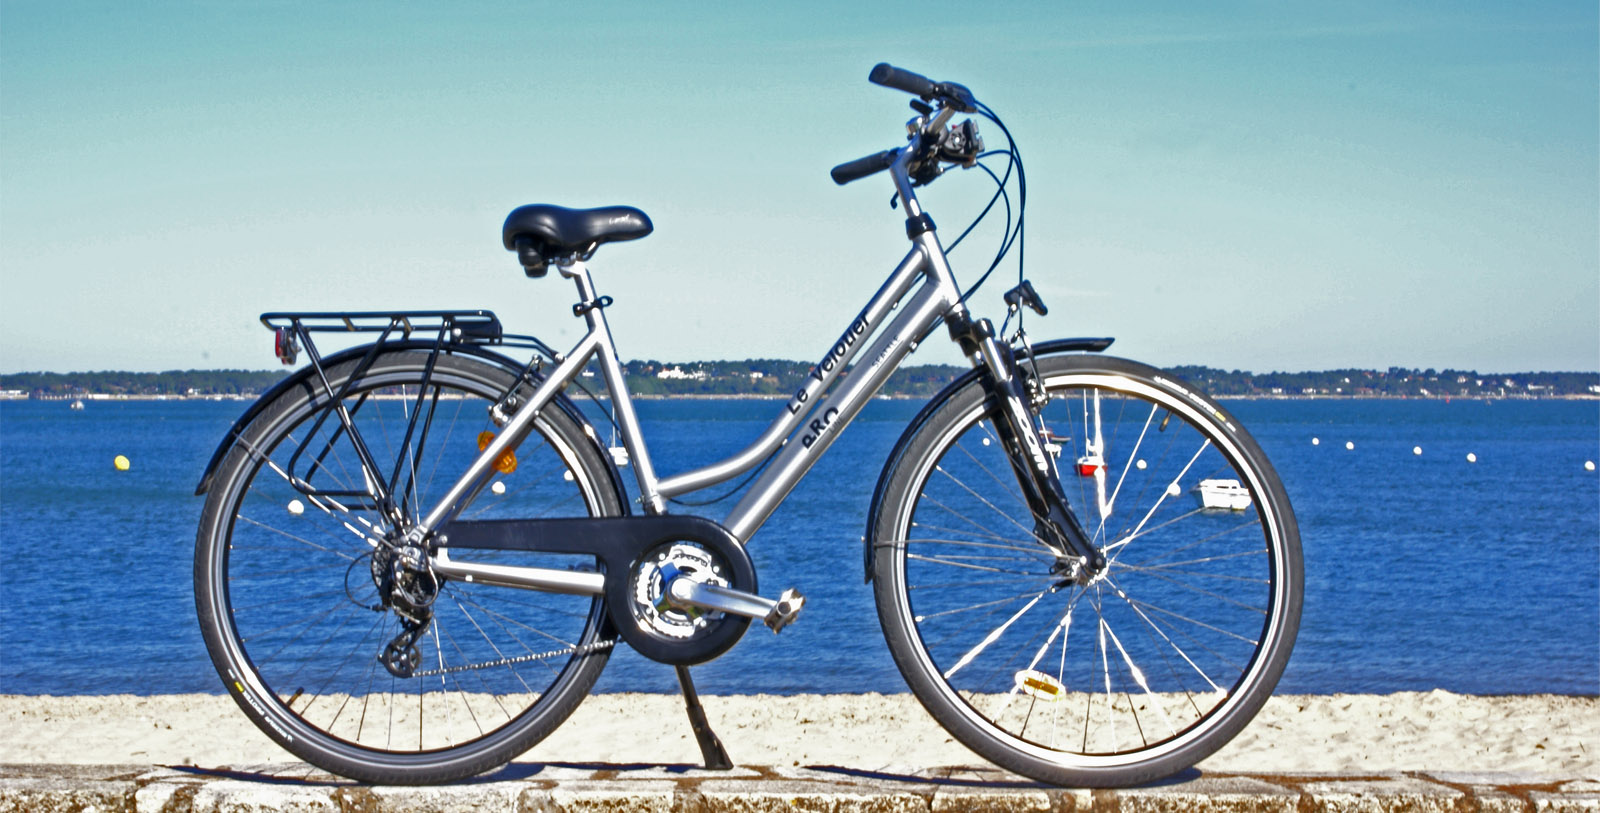 Le Vélotier rental city bikes for adults in Pyla sur mer